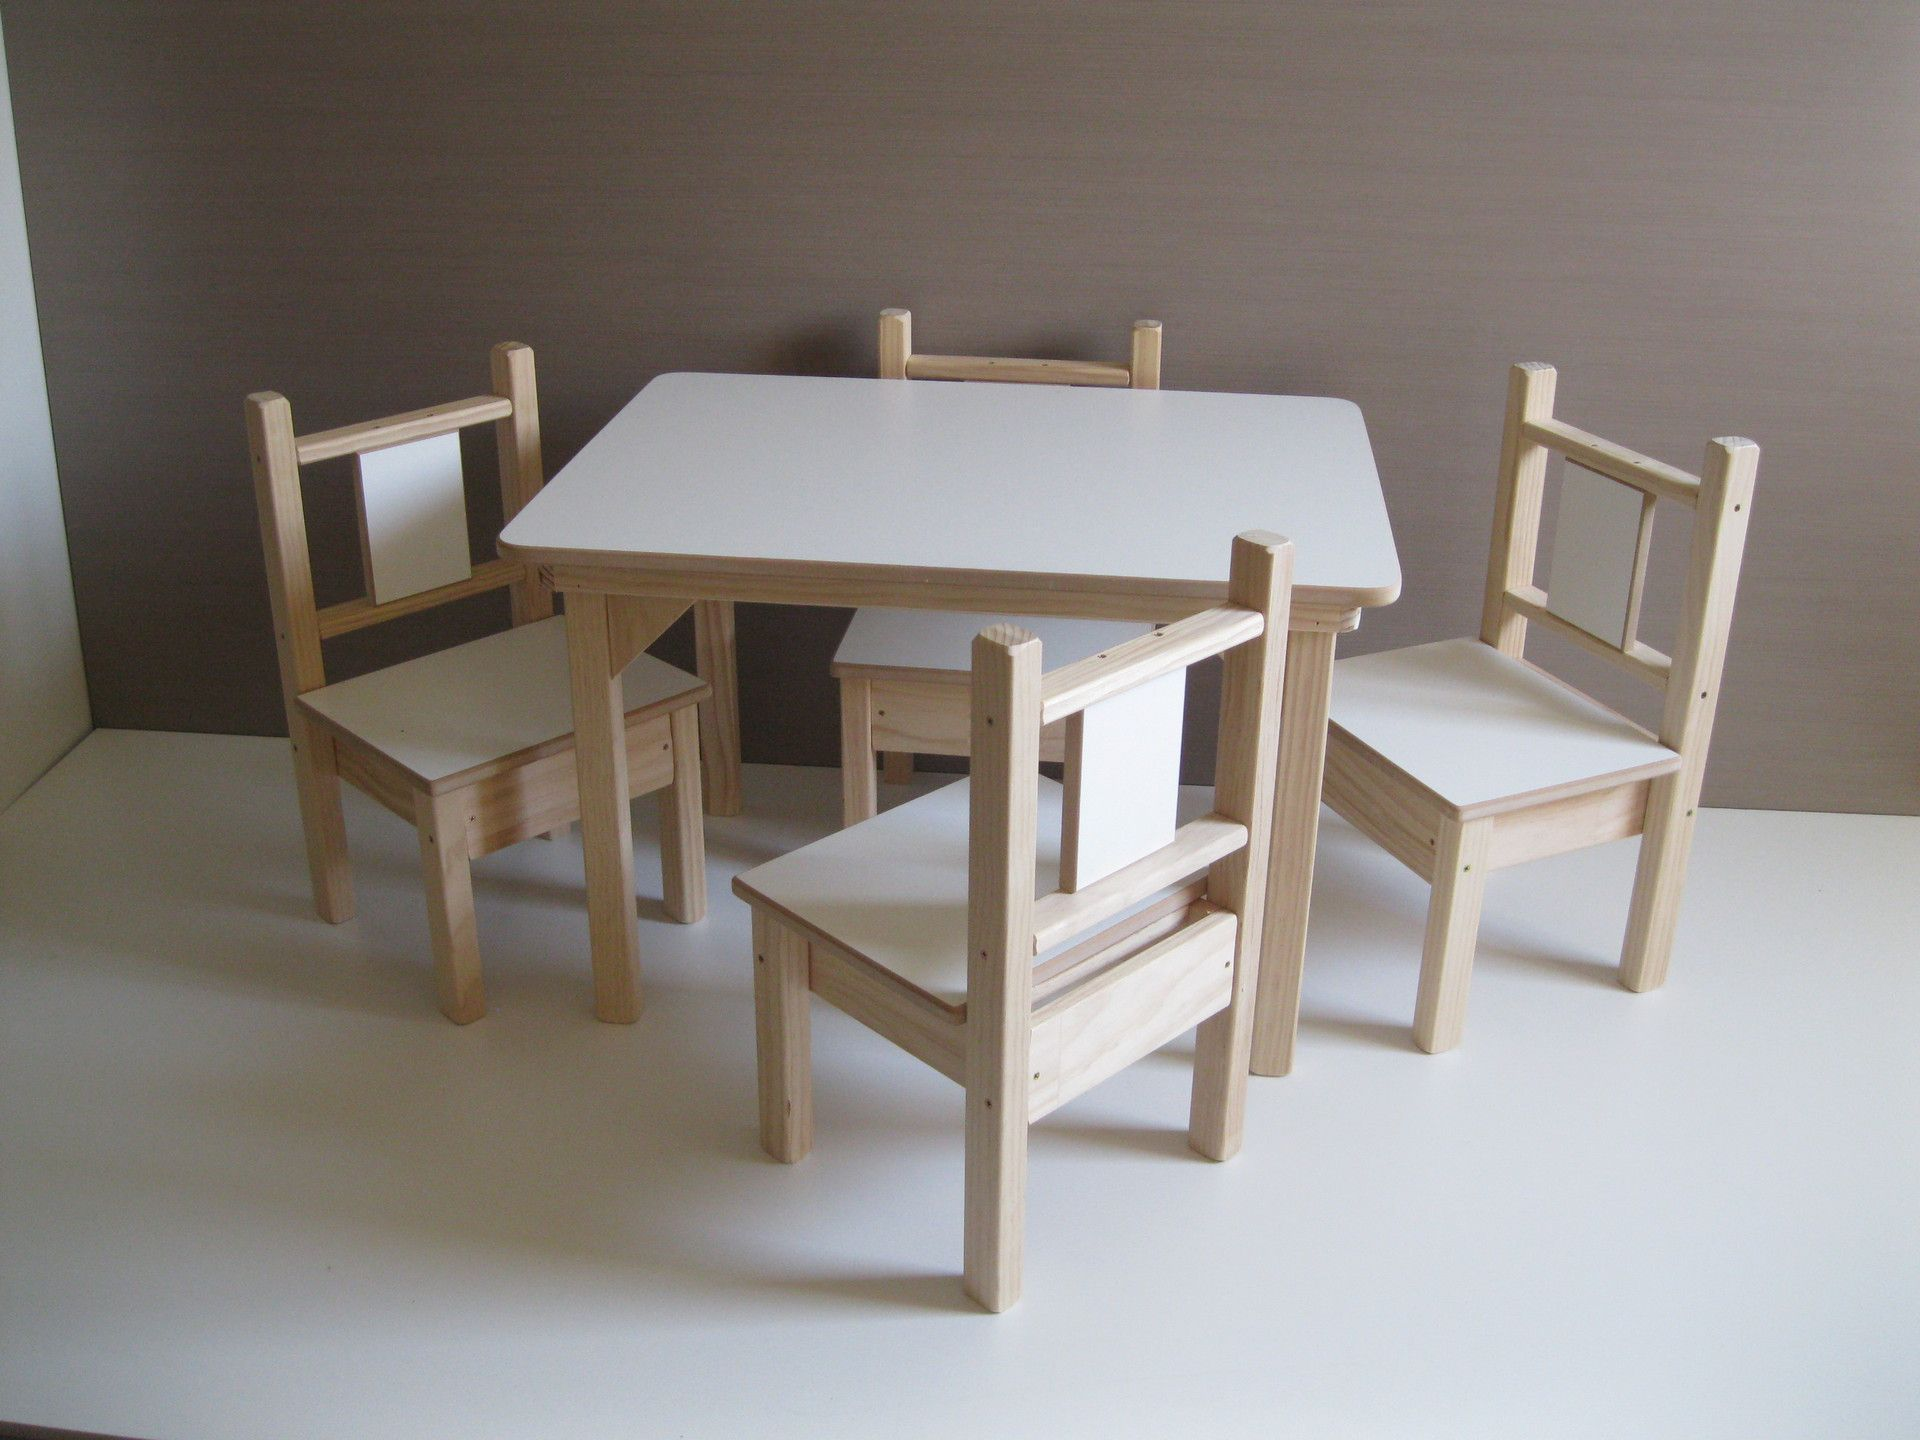 Kids Furniture In New Zealand Is A Leading Name For Innovative Children Call Us On 327